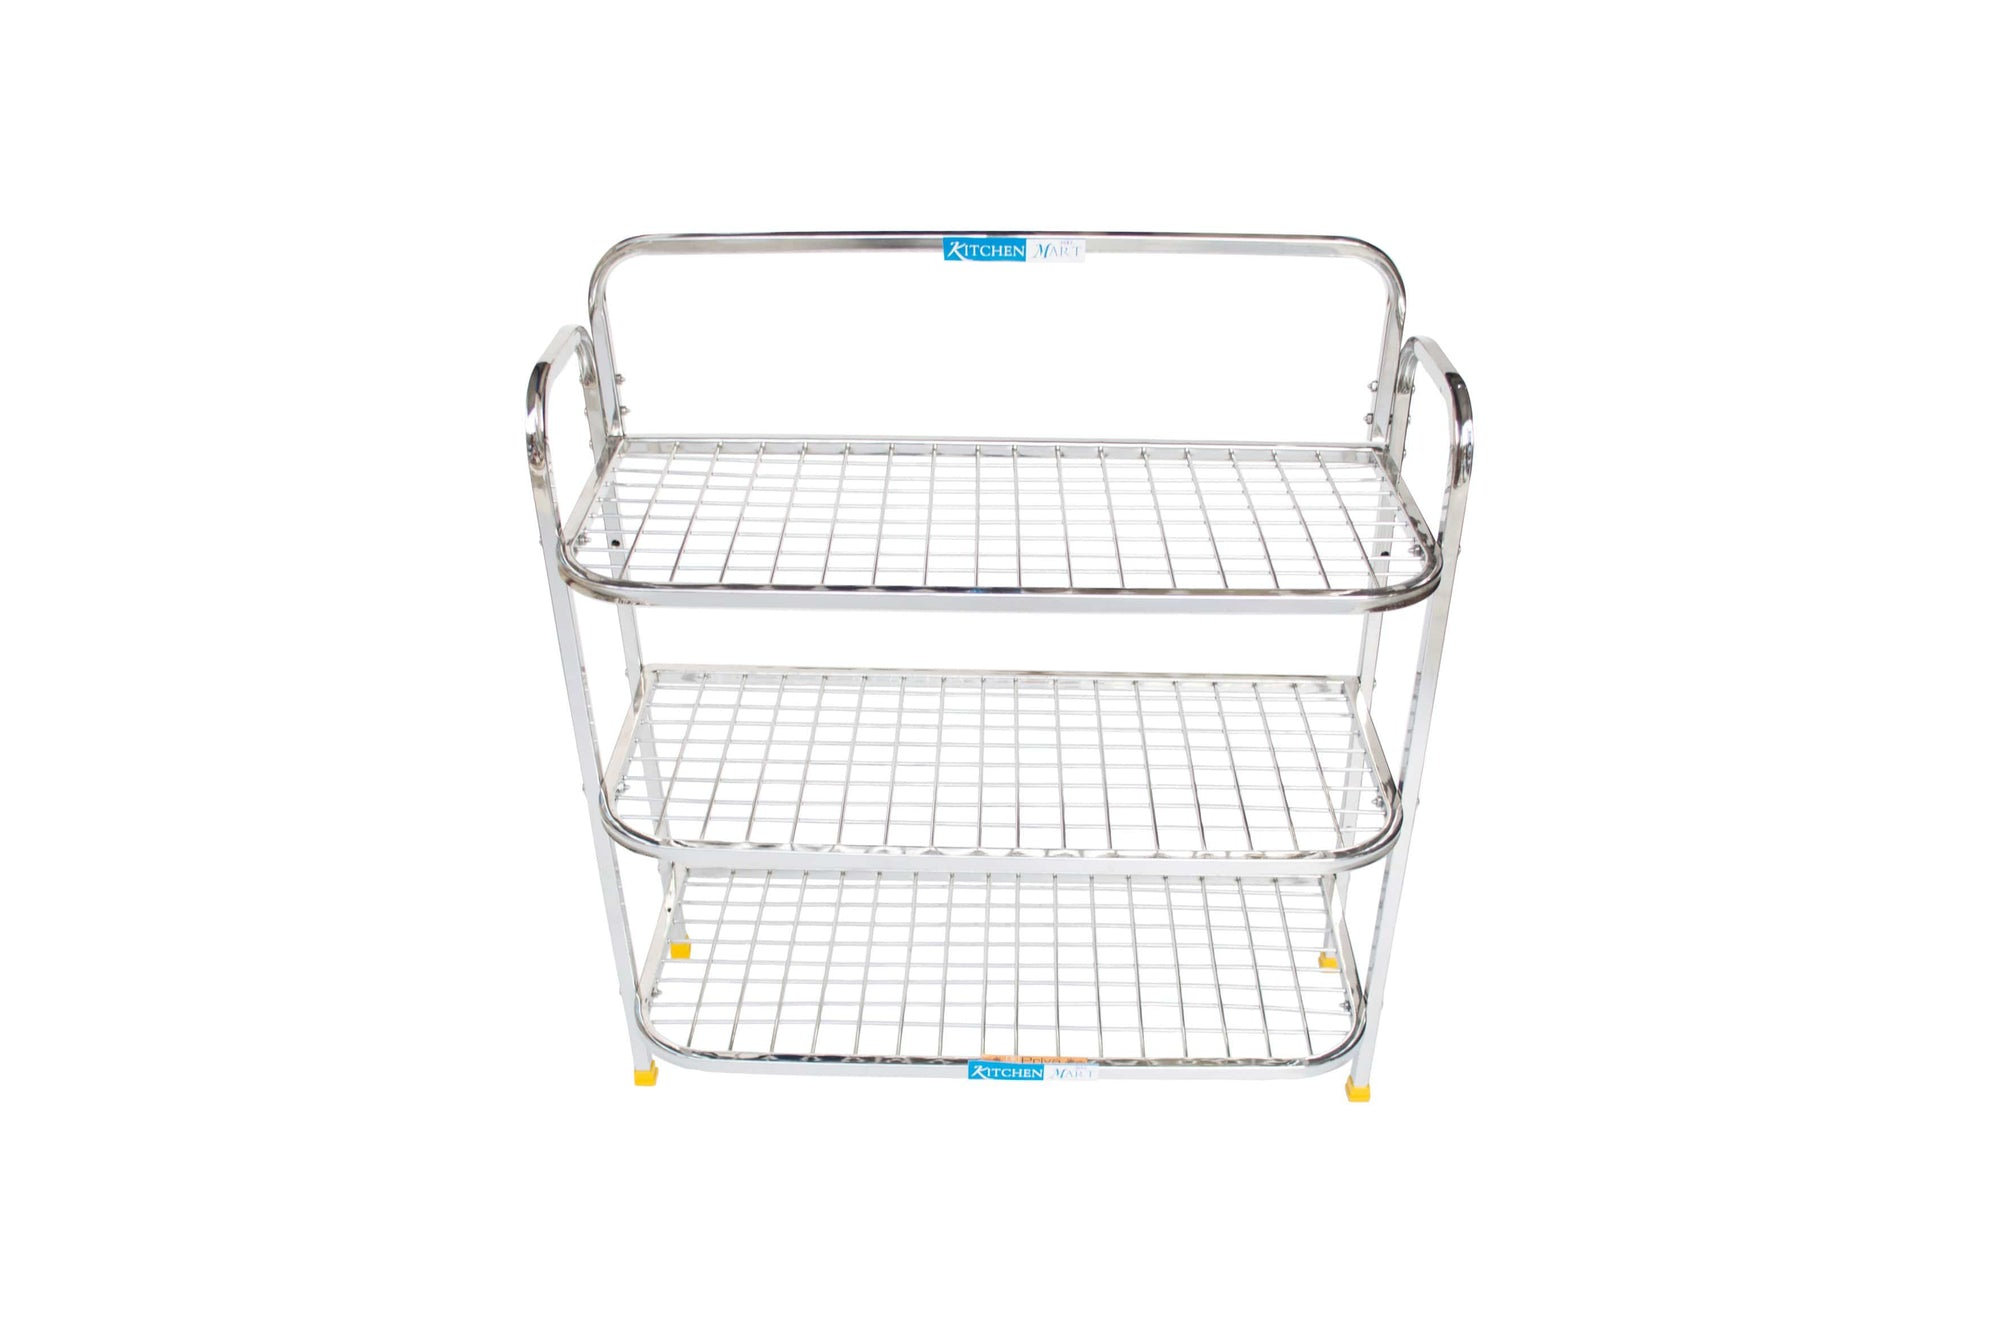 Kitchen Mart Stainless Steel shoe rack/ Kitchen Storage shelf rack (24x3) - KITCHEN MART